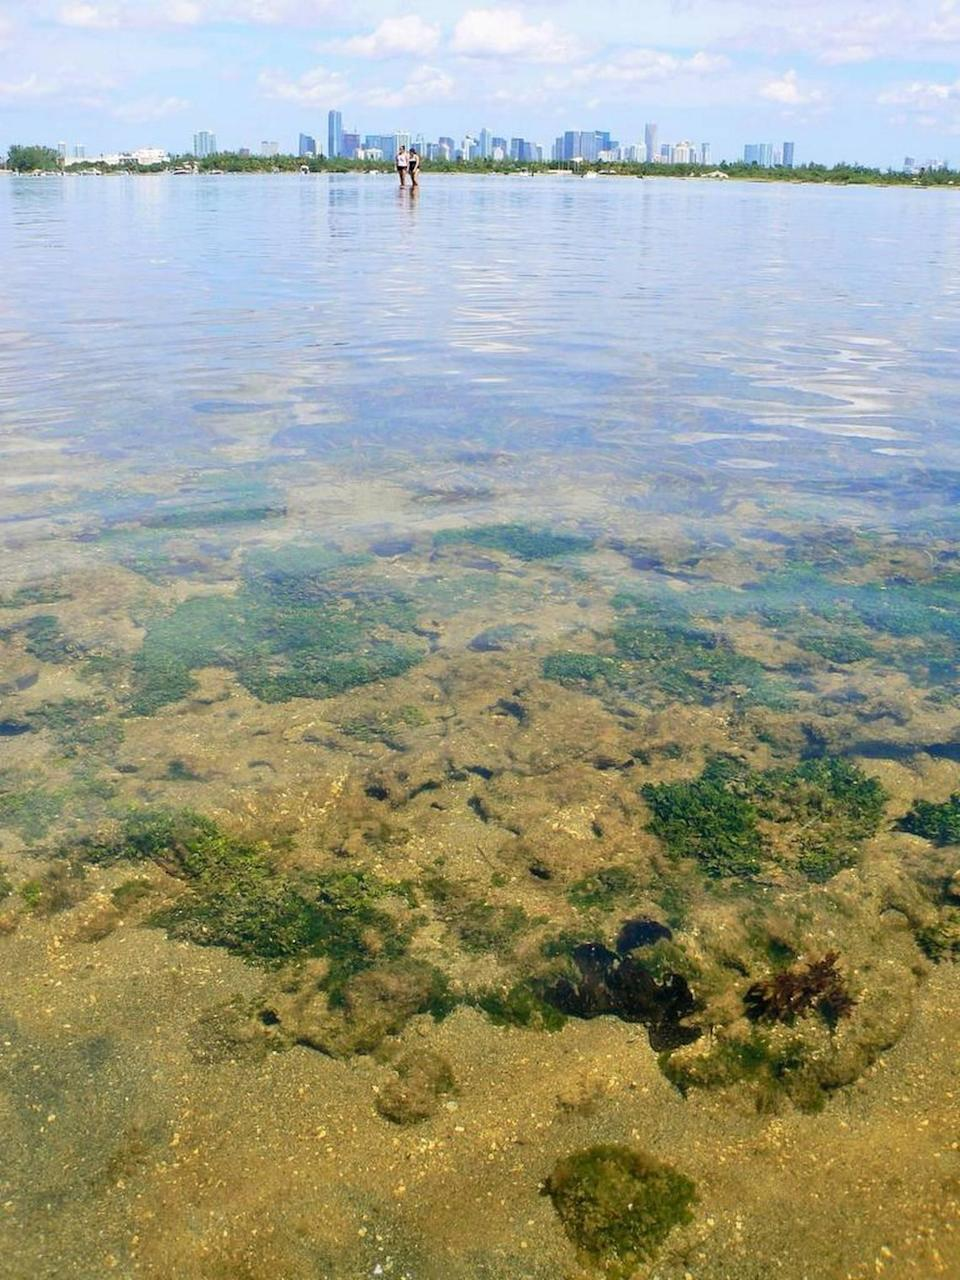 Nutrient pollution is increasing algae blooms and contributing to a decline in seagrass meadows in Biscayne Bay.